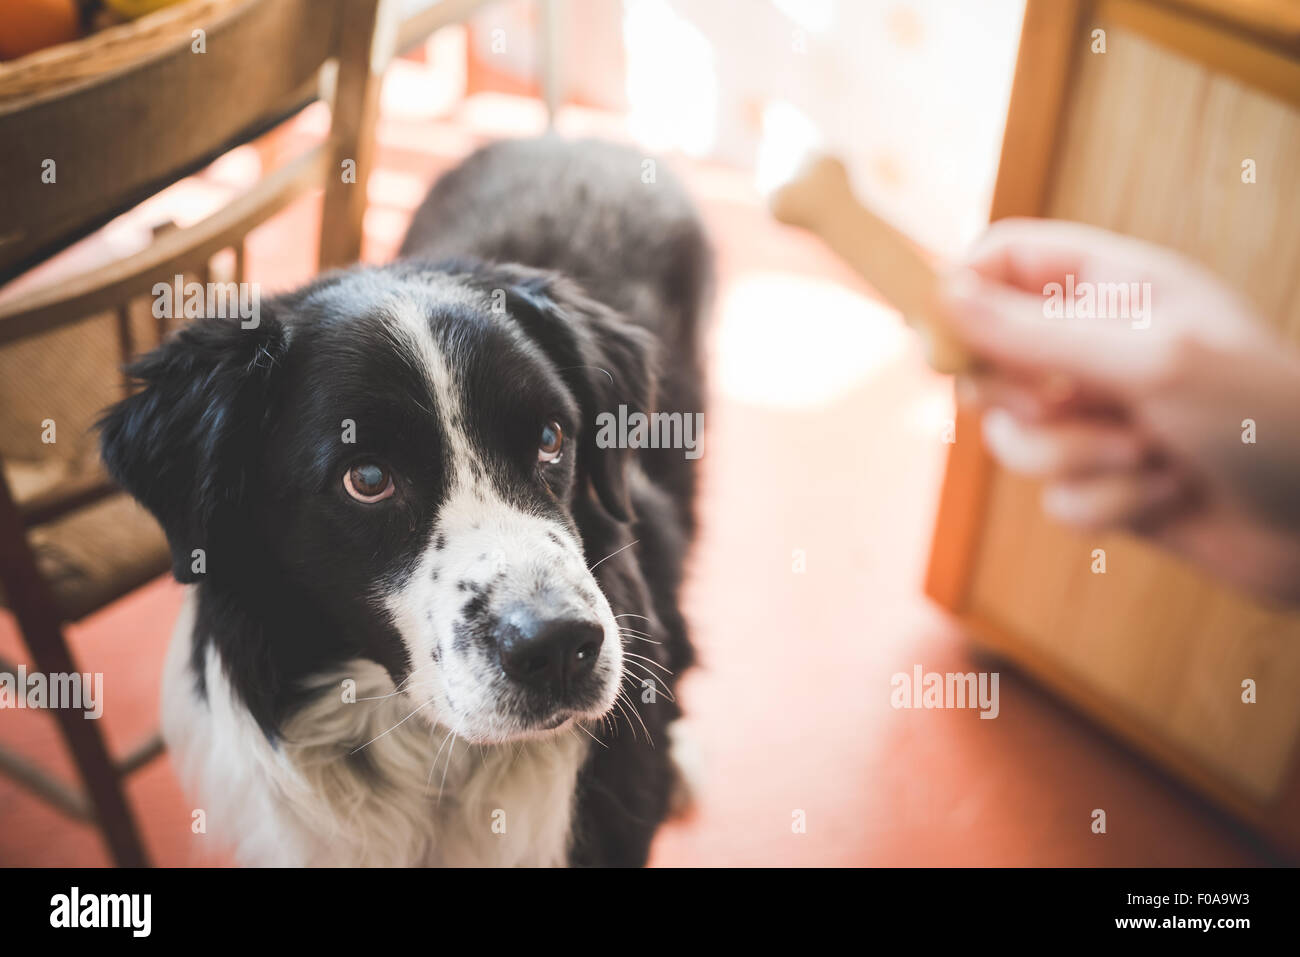 Portrait of dog staring at owners hand and dog biscuit - Stock Image